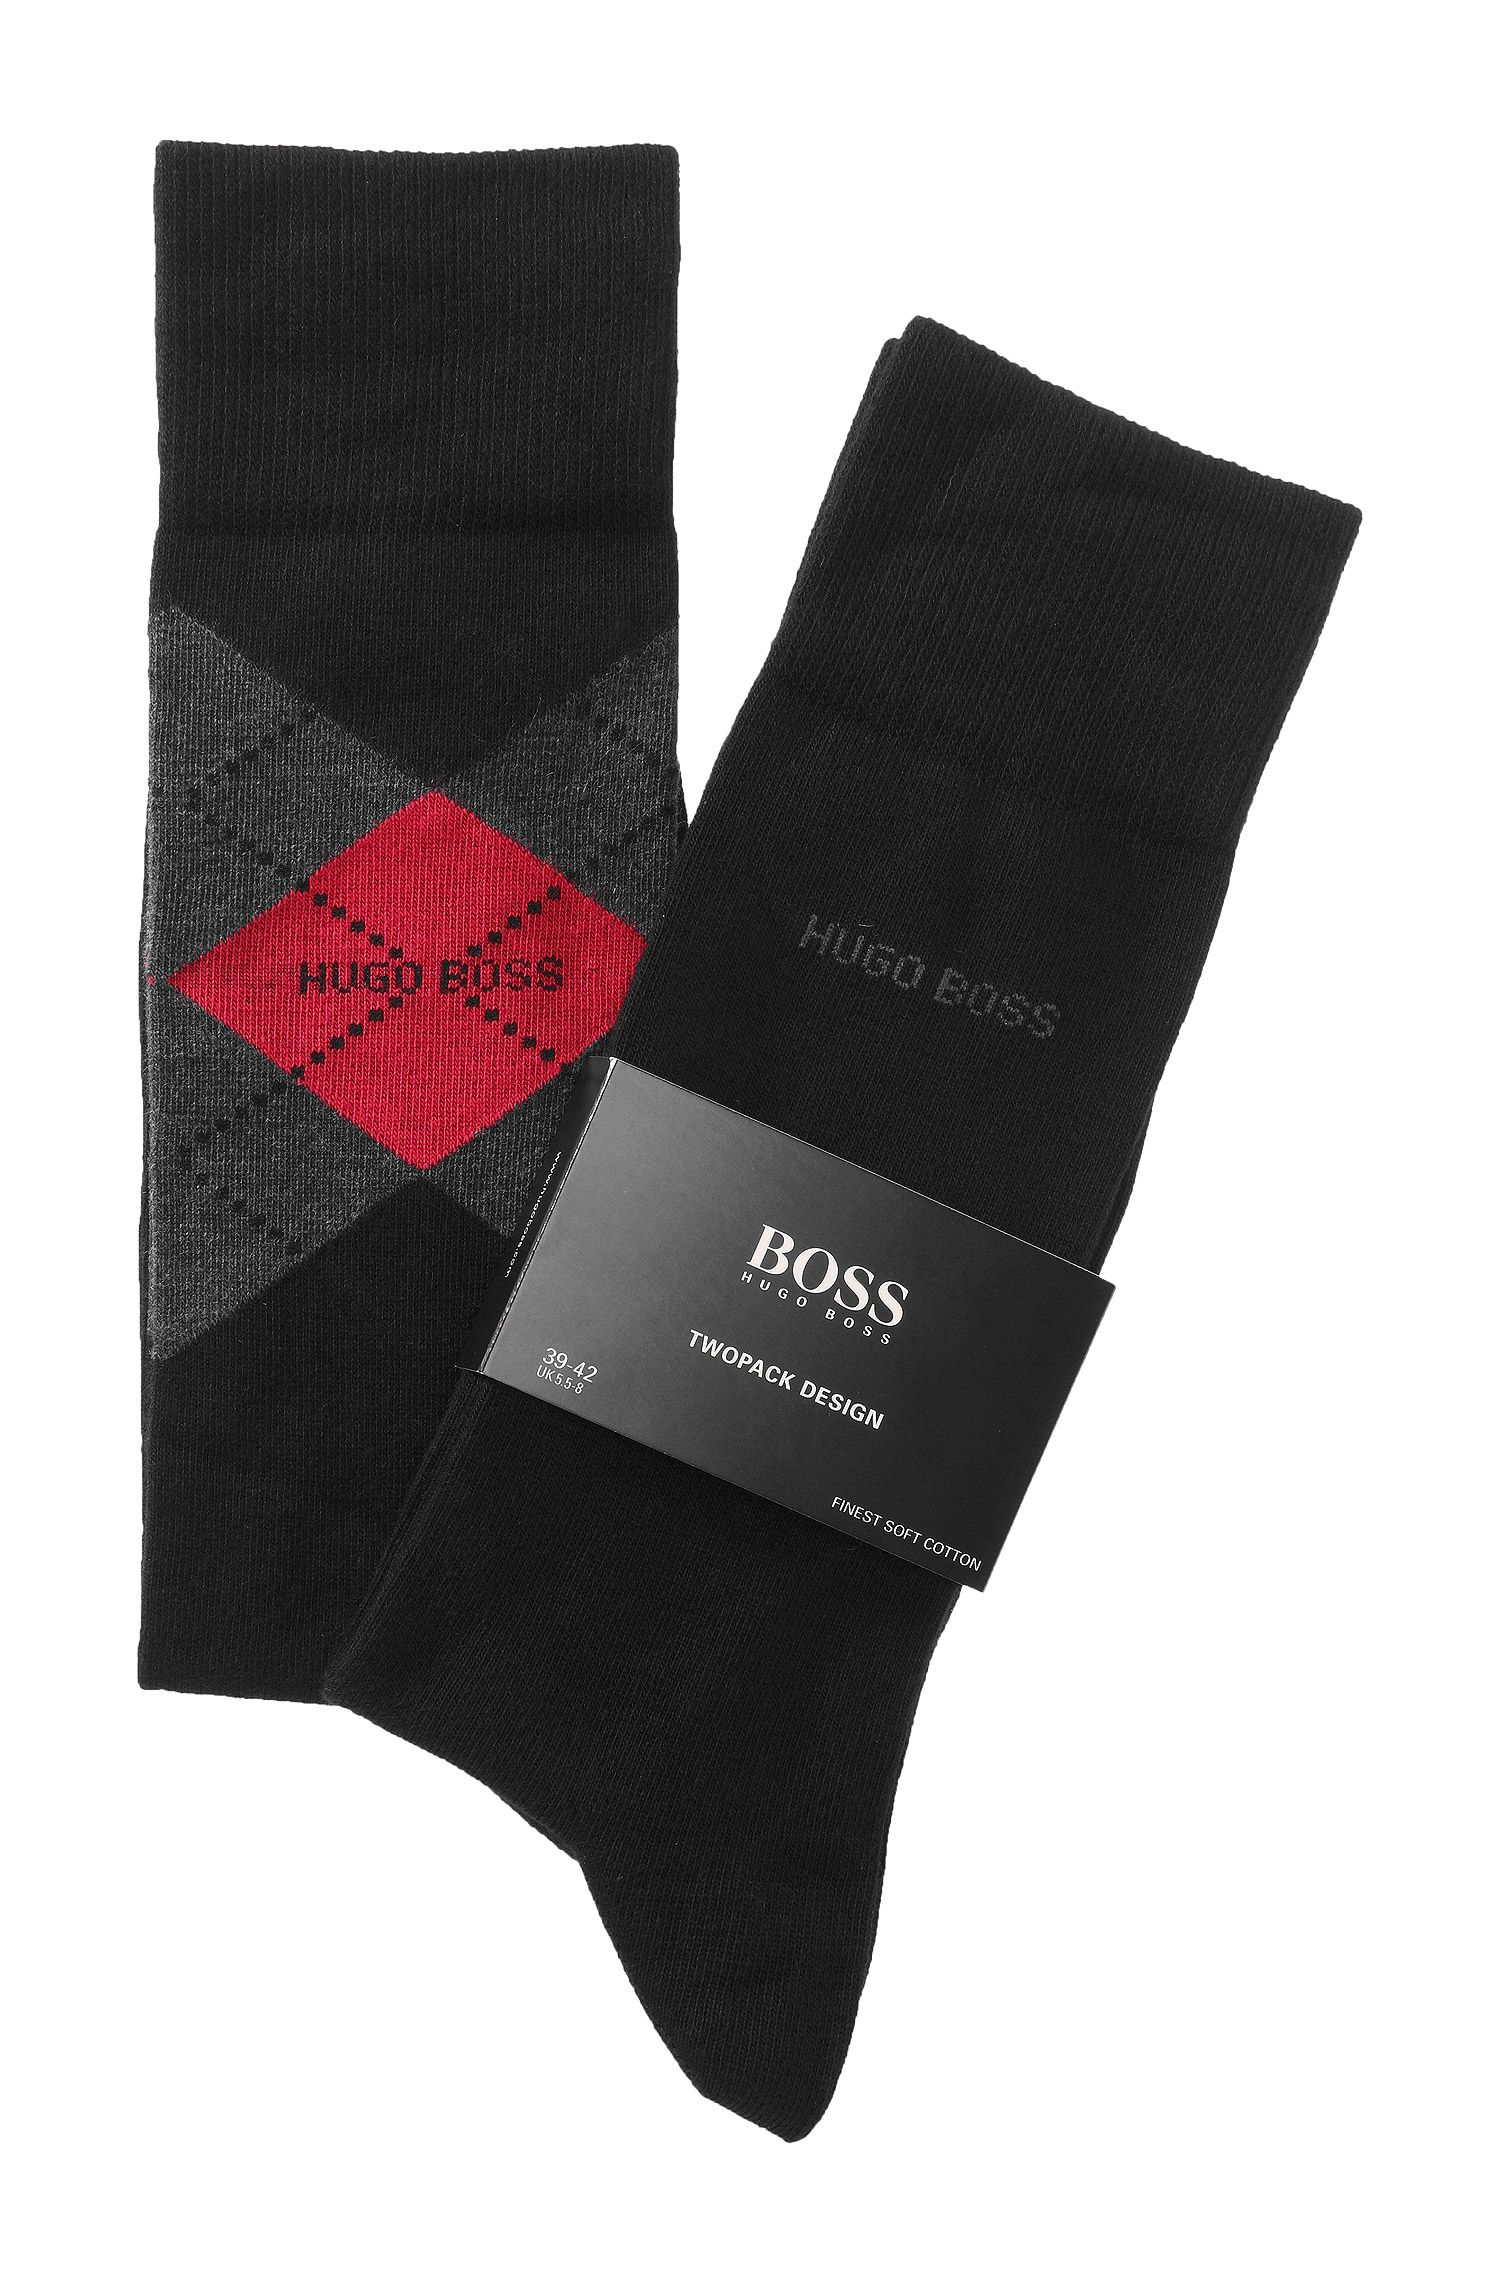 Chaussettes en lot de 2, Twopack RS Design